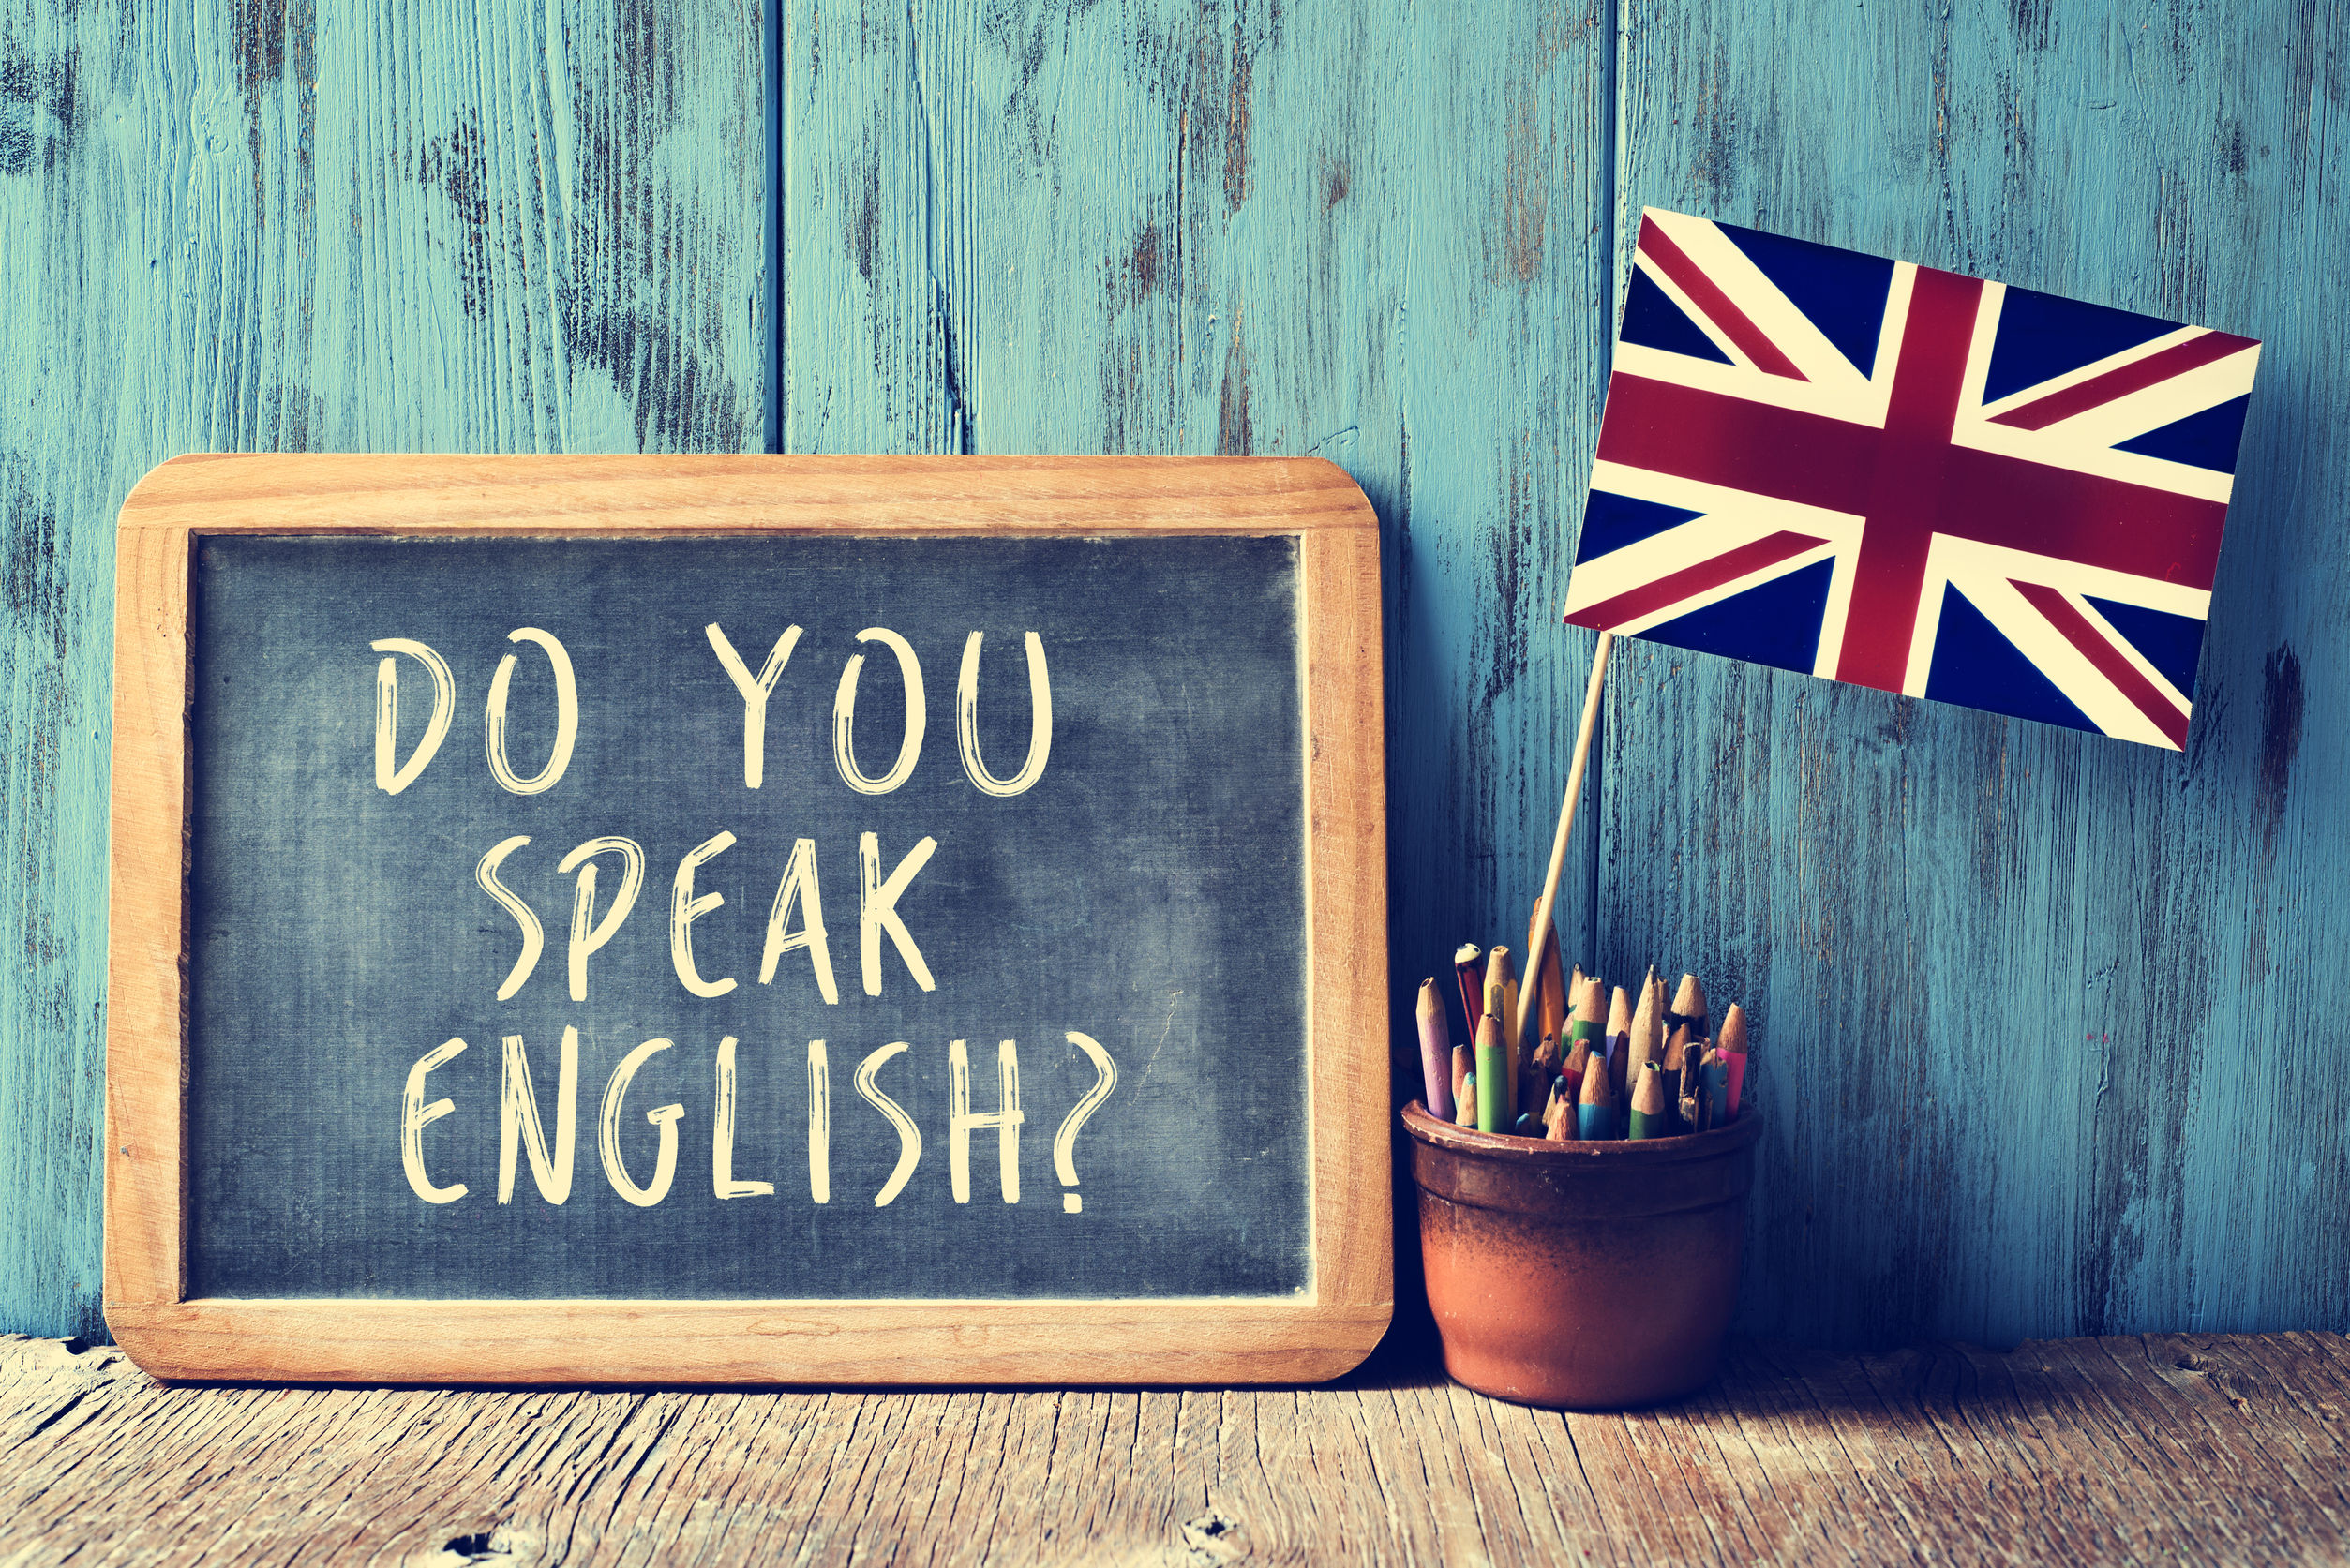 En un pizarra aparece Do you speak english y está junto a un recipiente con lapices y una bandera inglesa pequeña